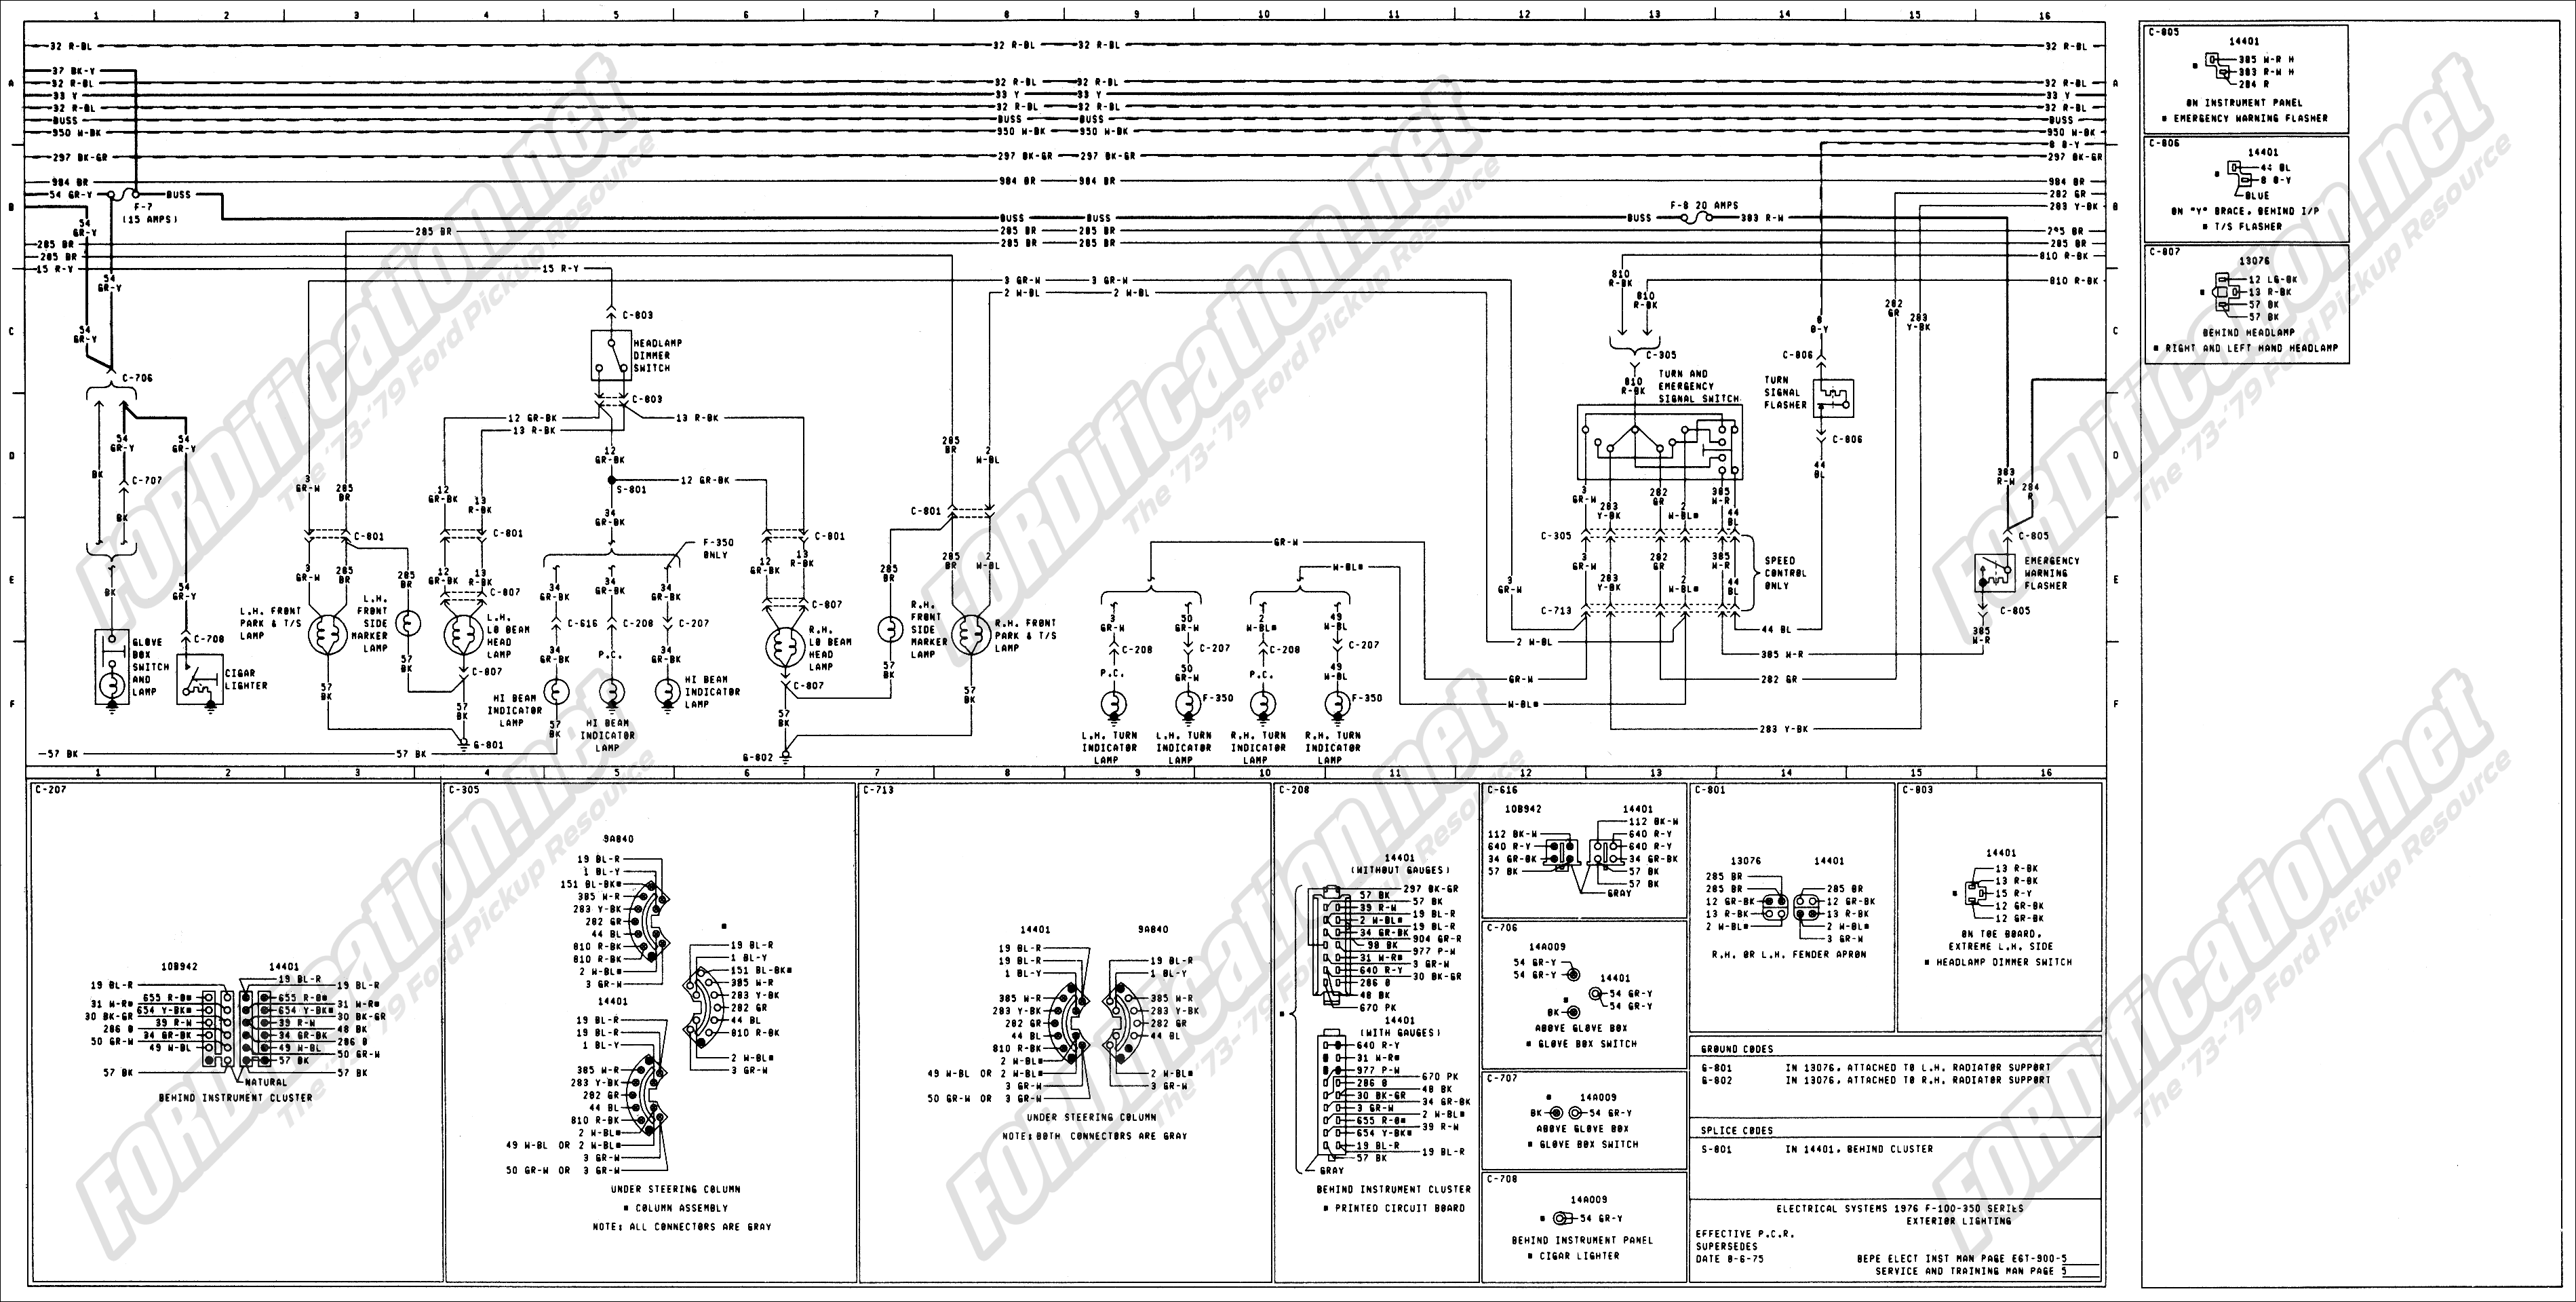 flatbed trailer wiring diagram free picture schematic 1973 1979 ford truck wiring diagrams   schematics fordification net  1973 1979 ford truck wiring diagrams